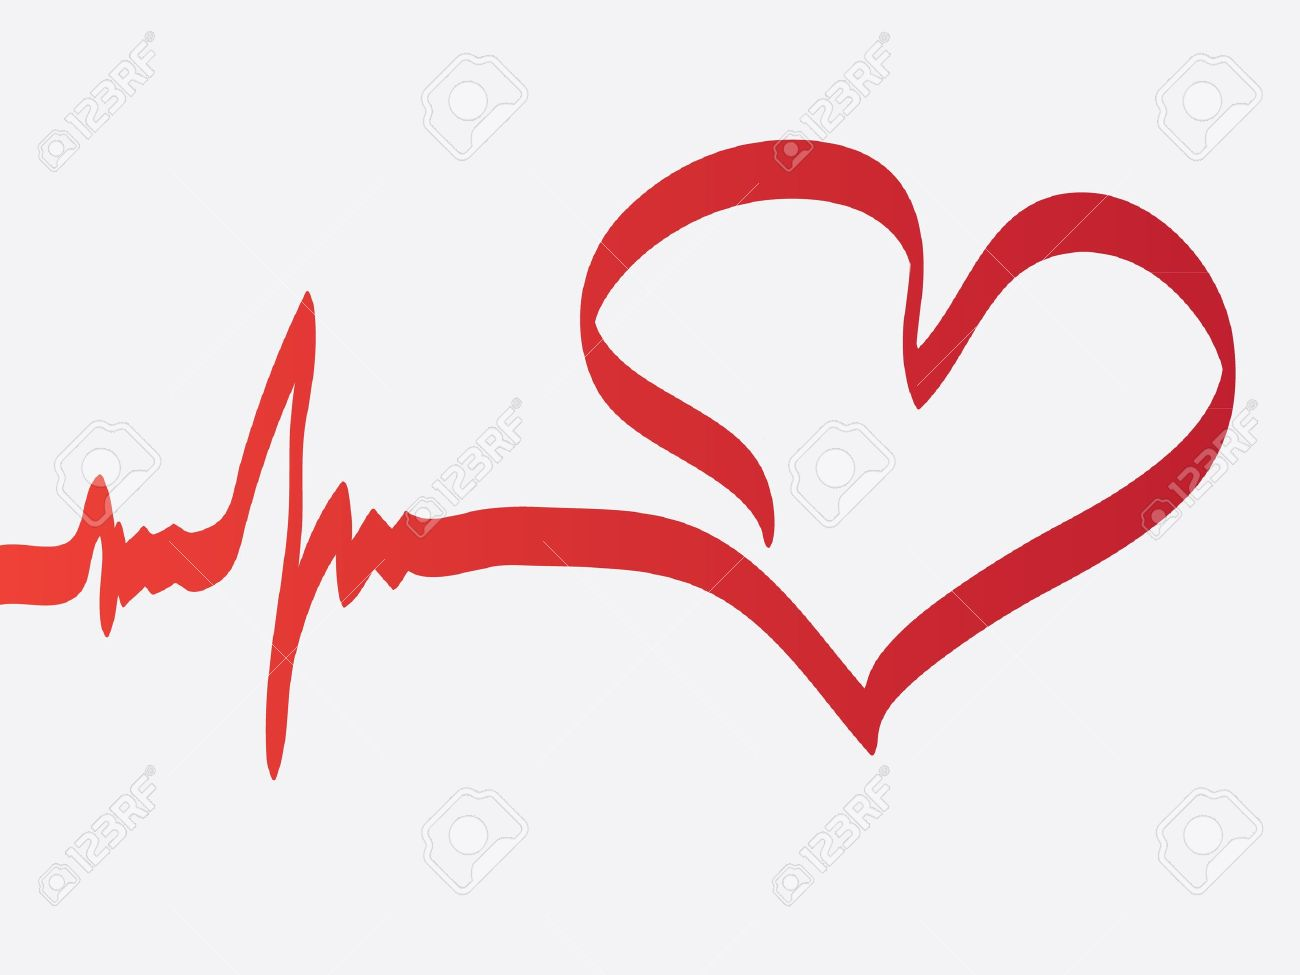 Heartbeat Line Art : Heart beat clipart clipground